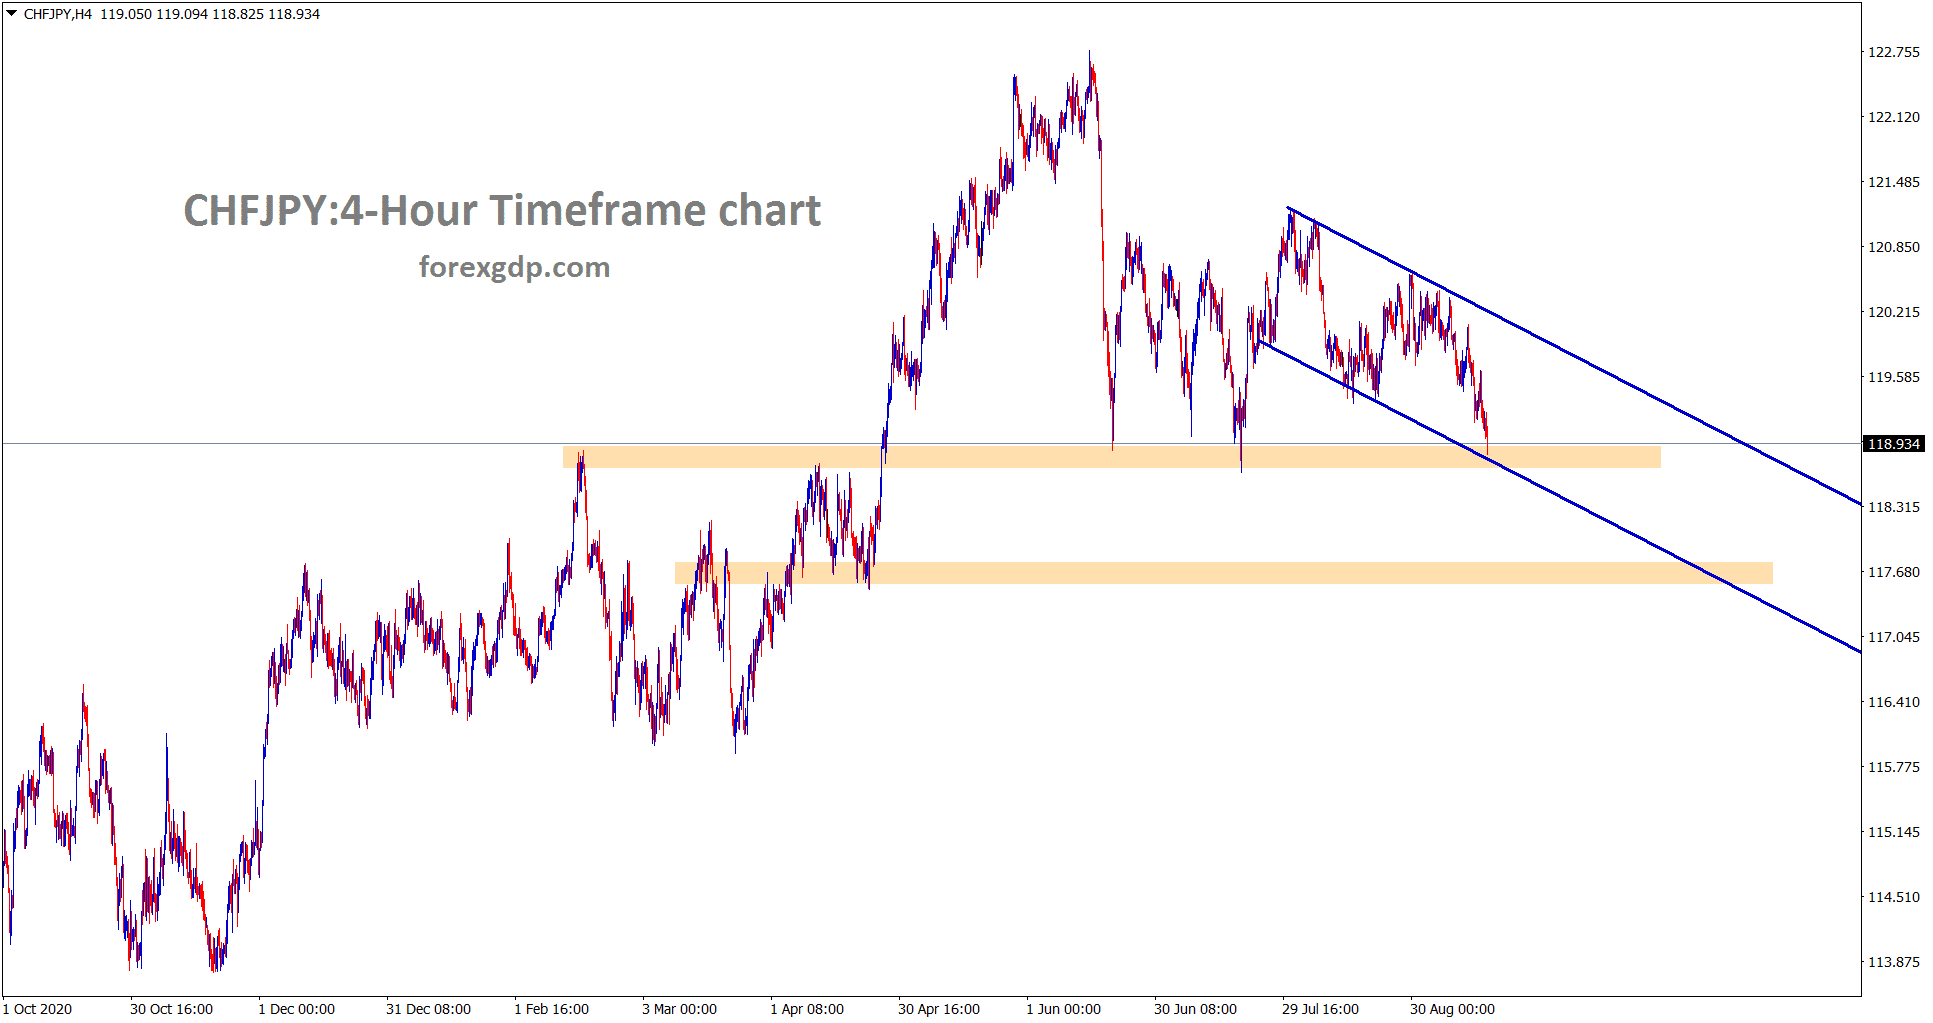 CHFJPY is standing at the lower low of the channel and the major support area